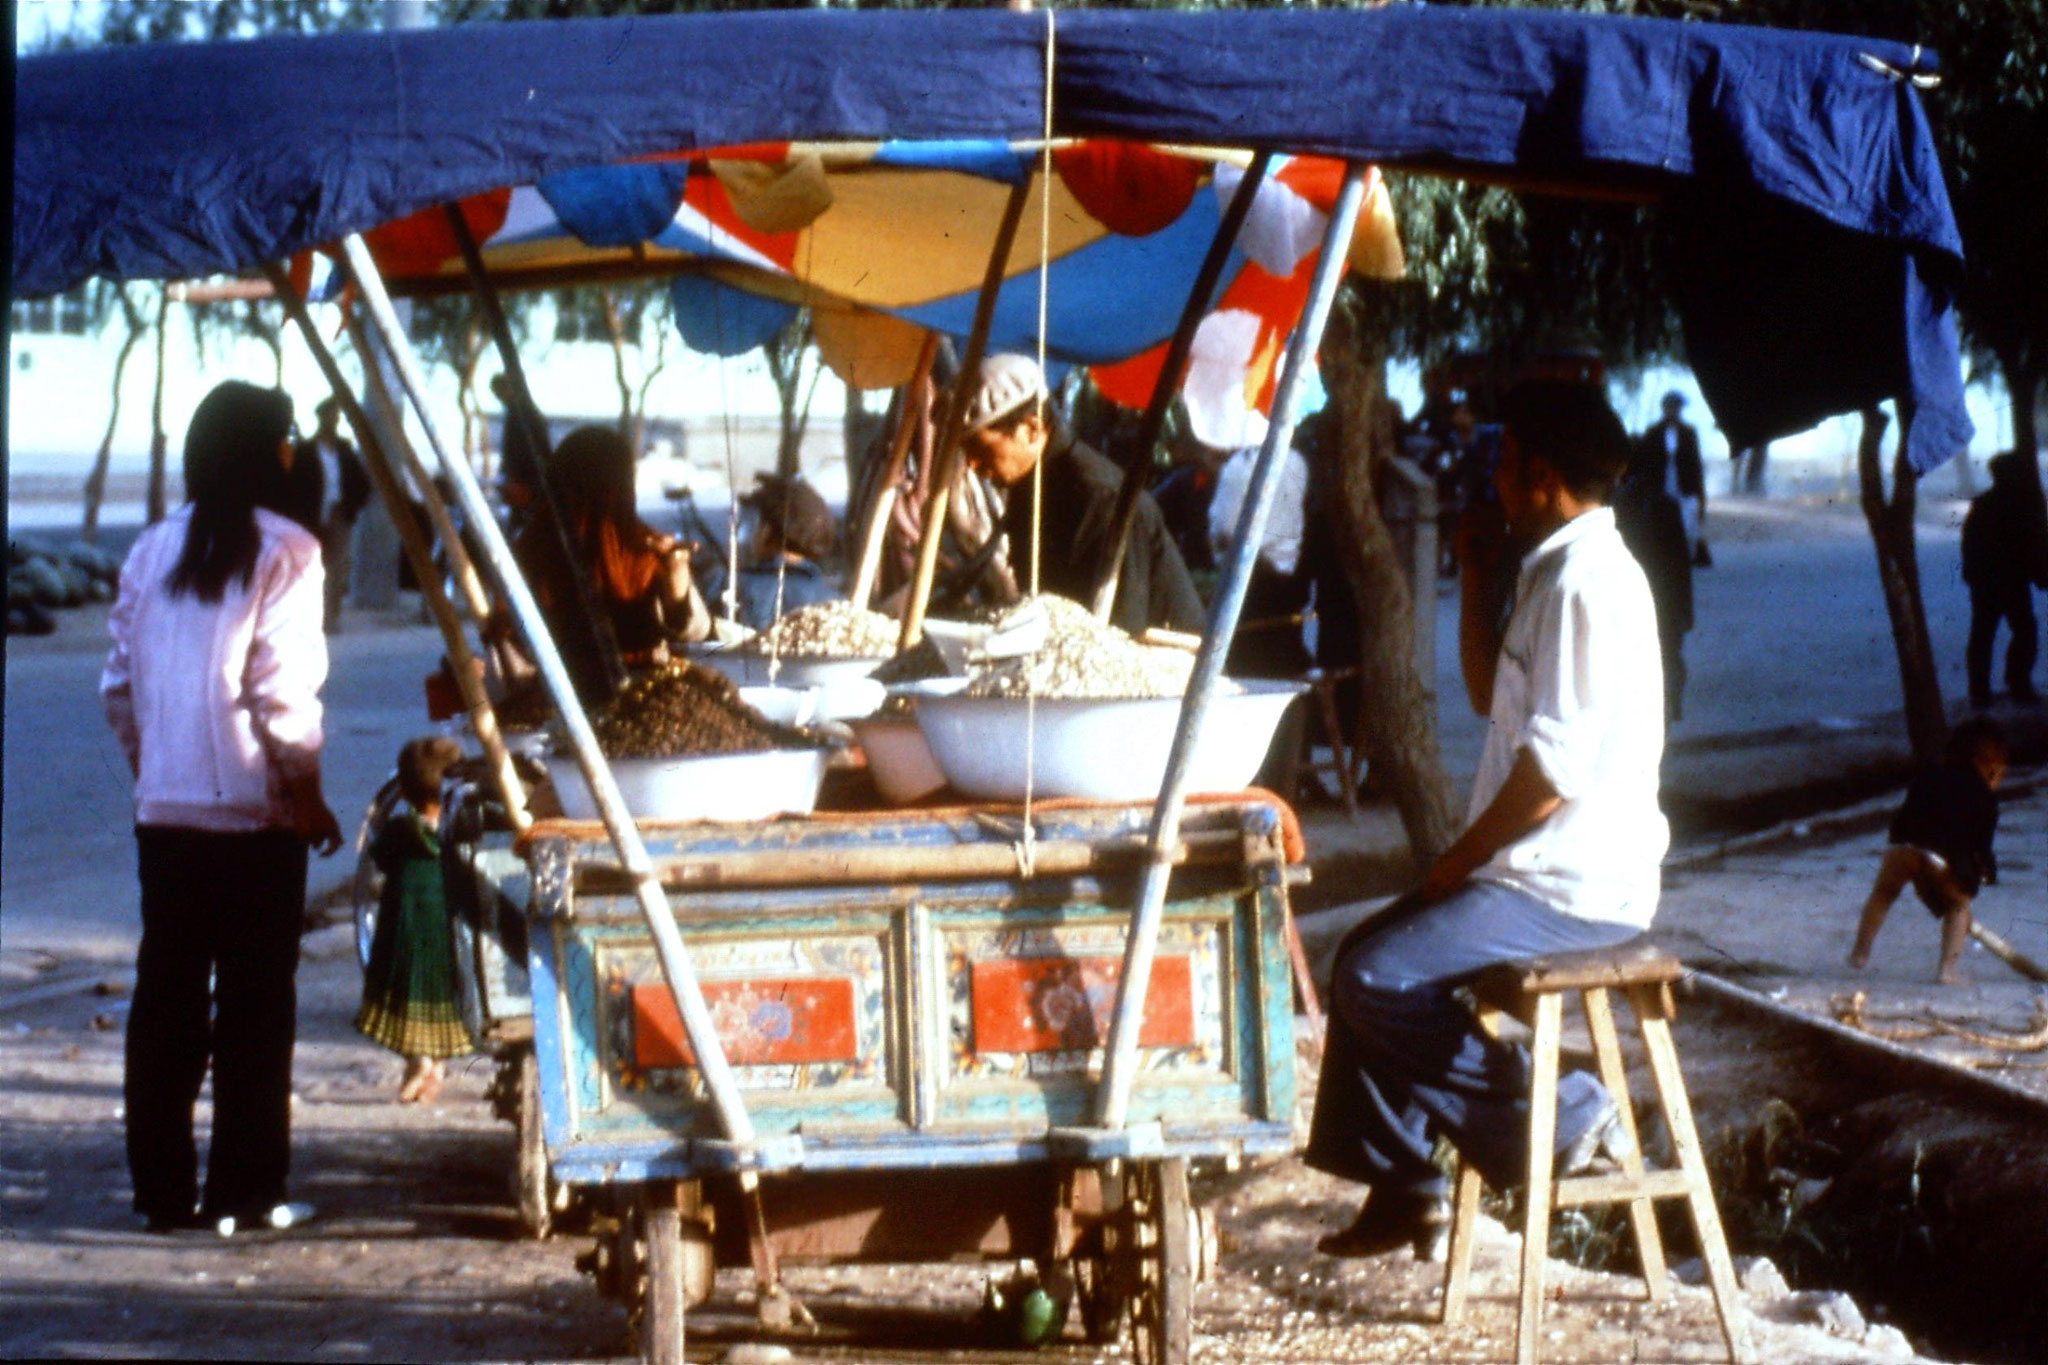 6/9/1989:7: foodstalls at breakfast stop